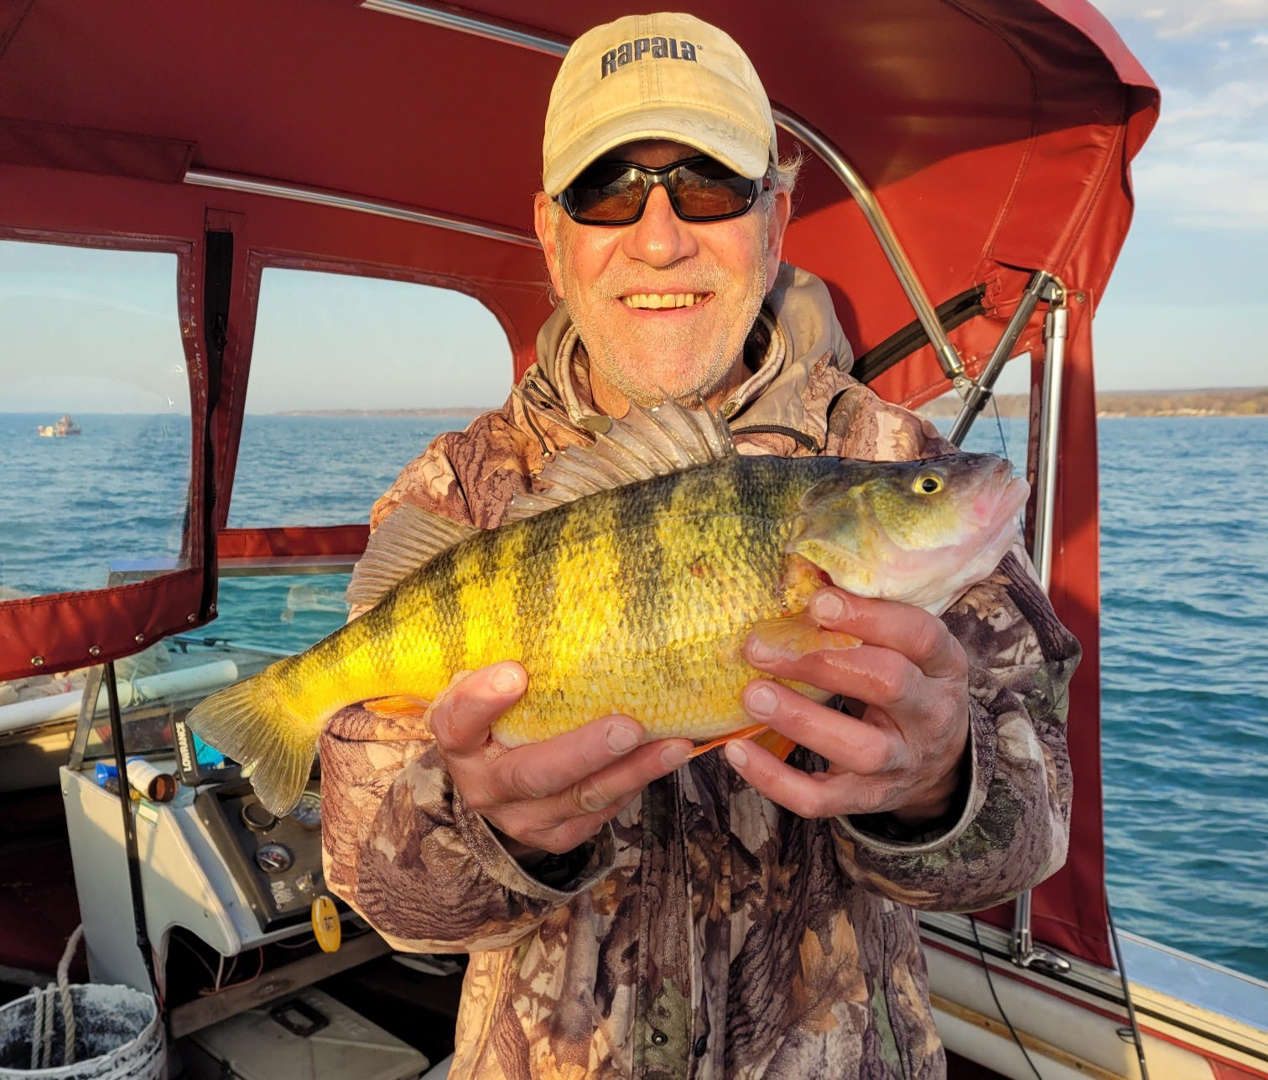 Man catches the state-record perch for Pennsylvania.